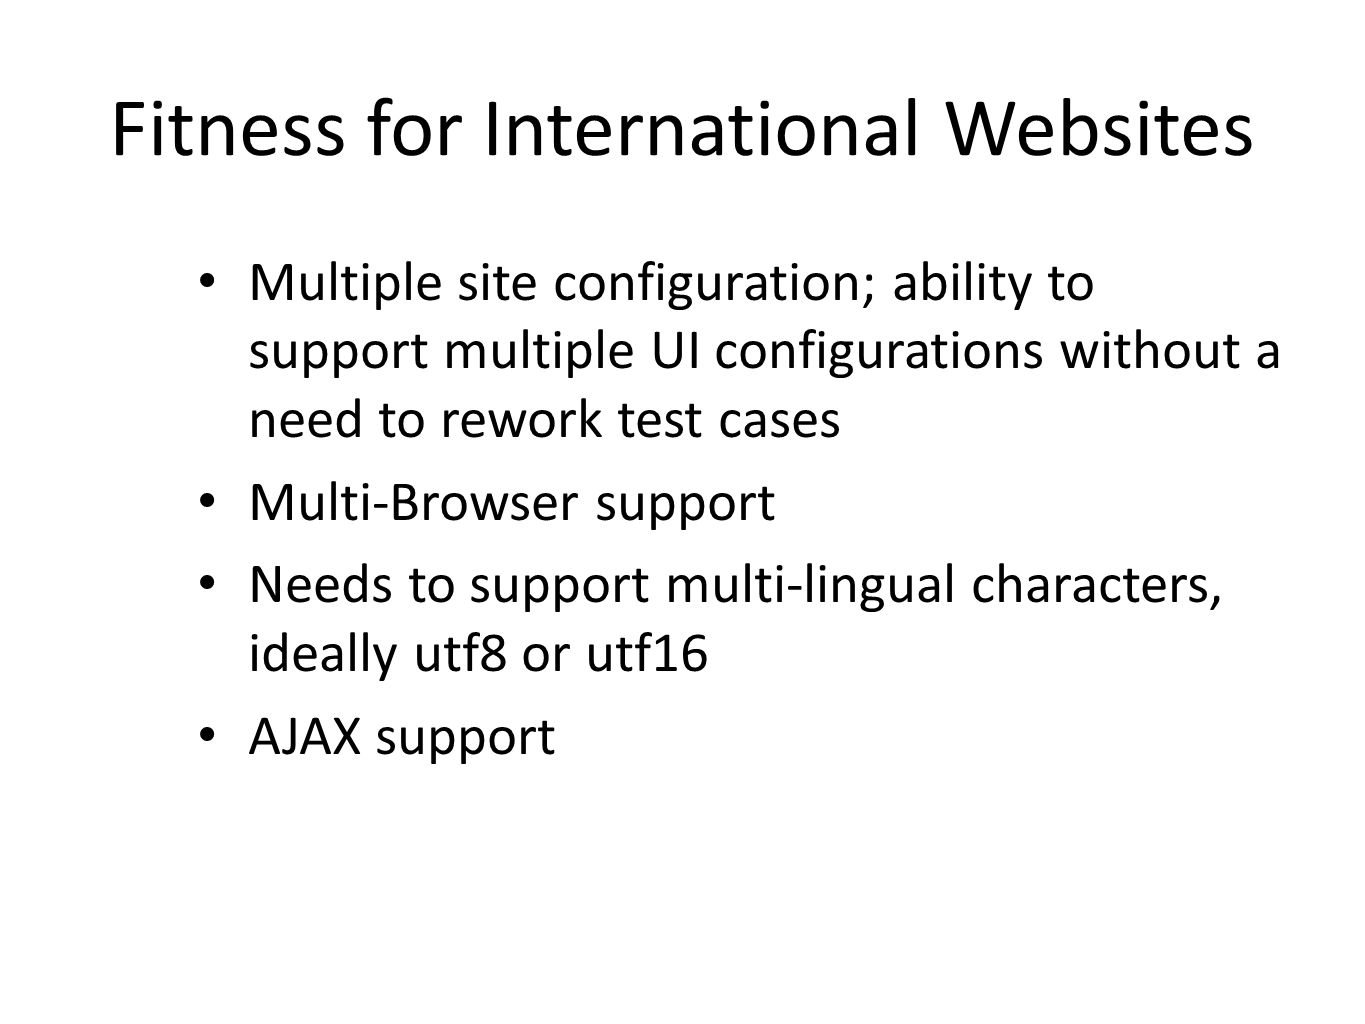 Fitness for International Websites Multiple site configuration; ability to support multiple UI configurations without a need to rework test cases Multi-Browser support Needs to support multi-lingual characters, ideally utf8 or utf16 AJAX support